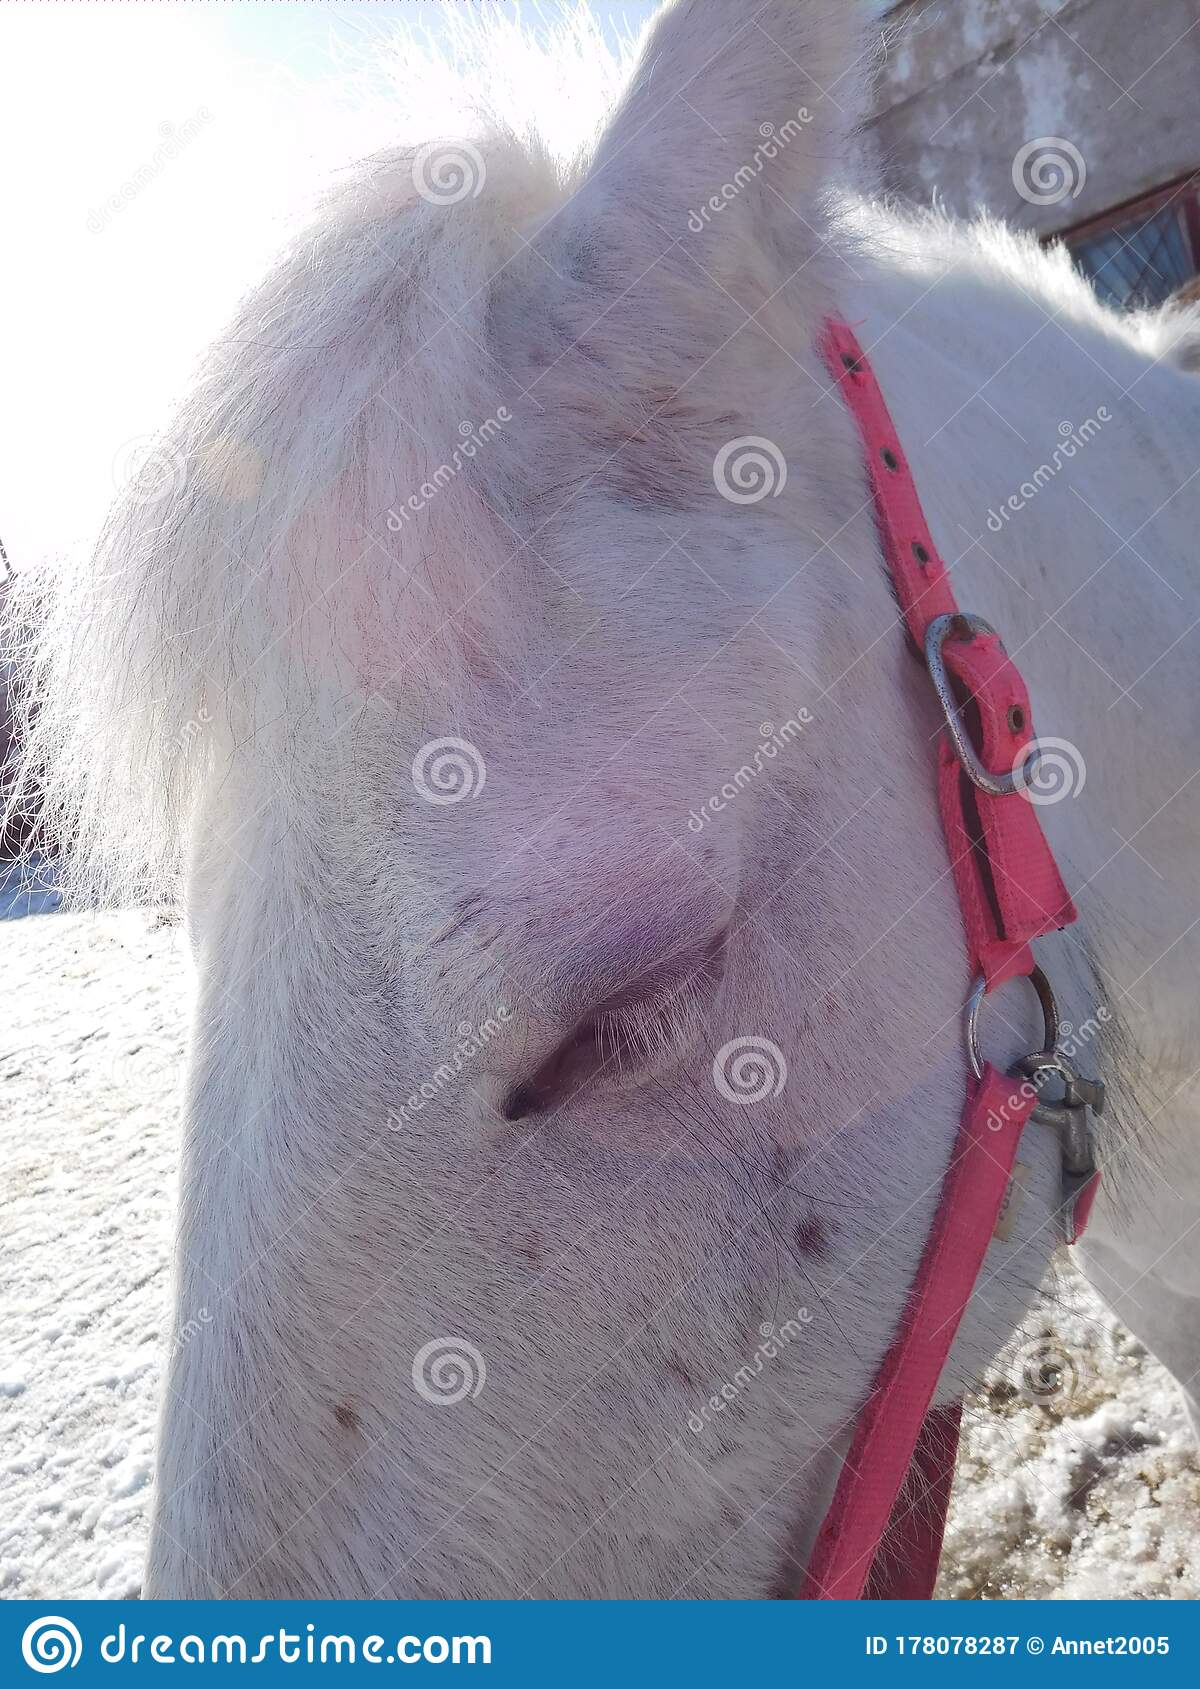 Cute Horse Face In Pink Halter Close Up Stock Image Image Of Head Person 178078287